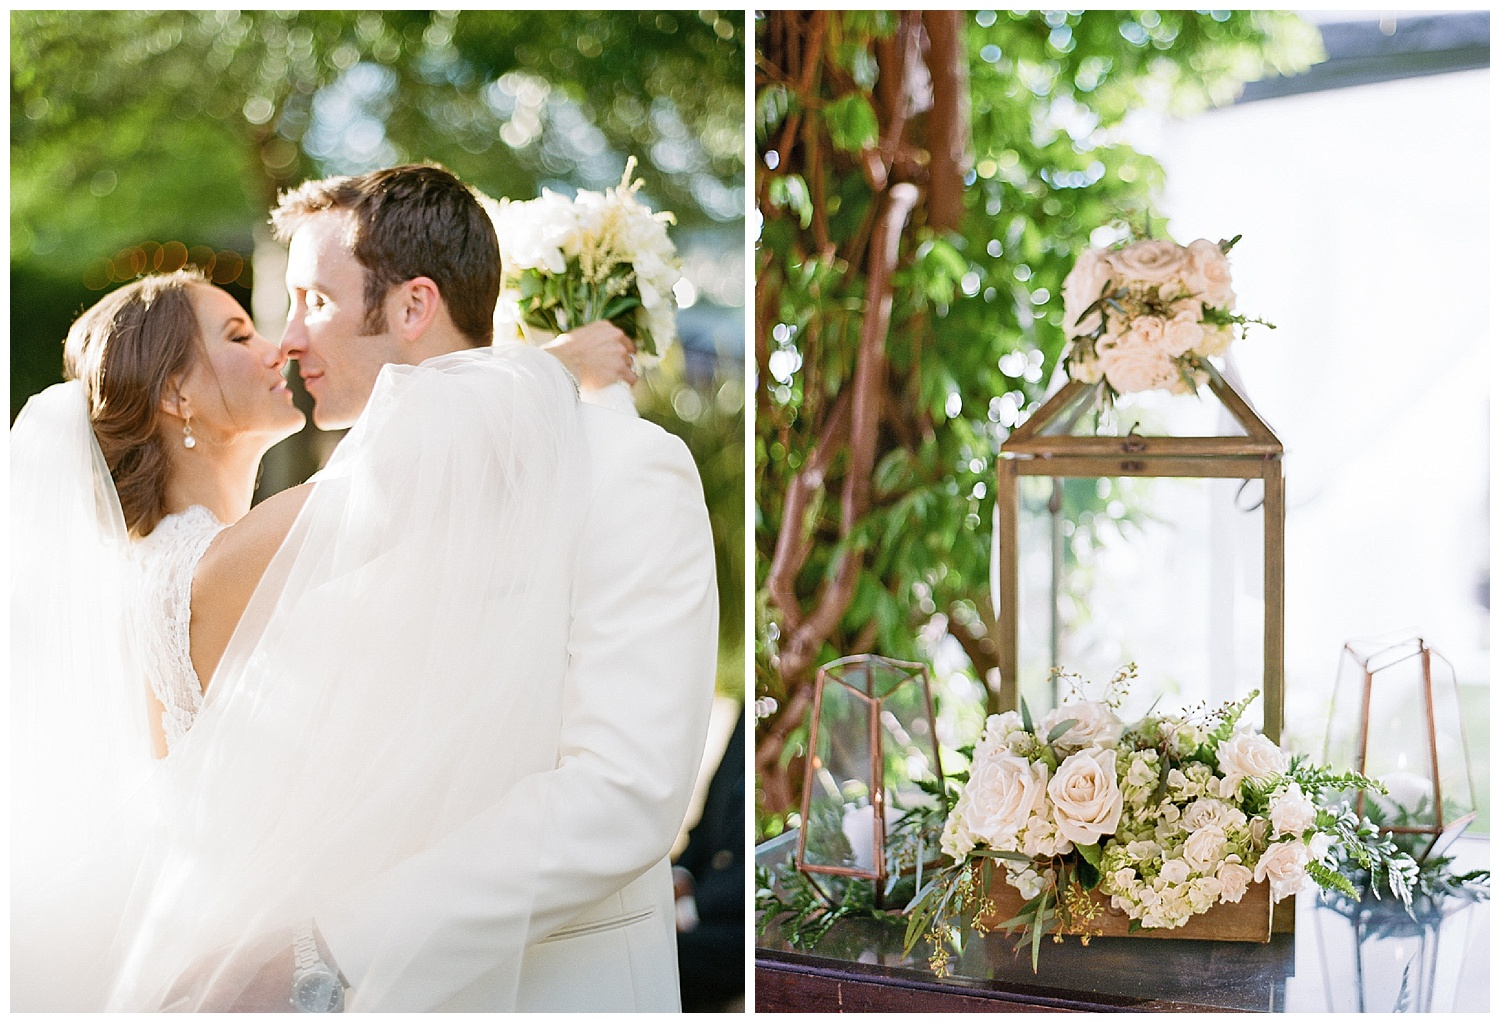 Bride and groom kiss after ceremony in Yountville, Napa Valley; Sylvie Gil Photography